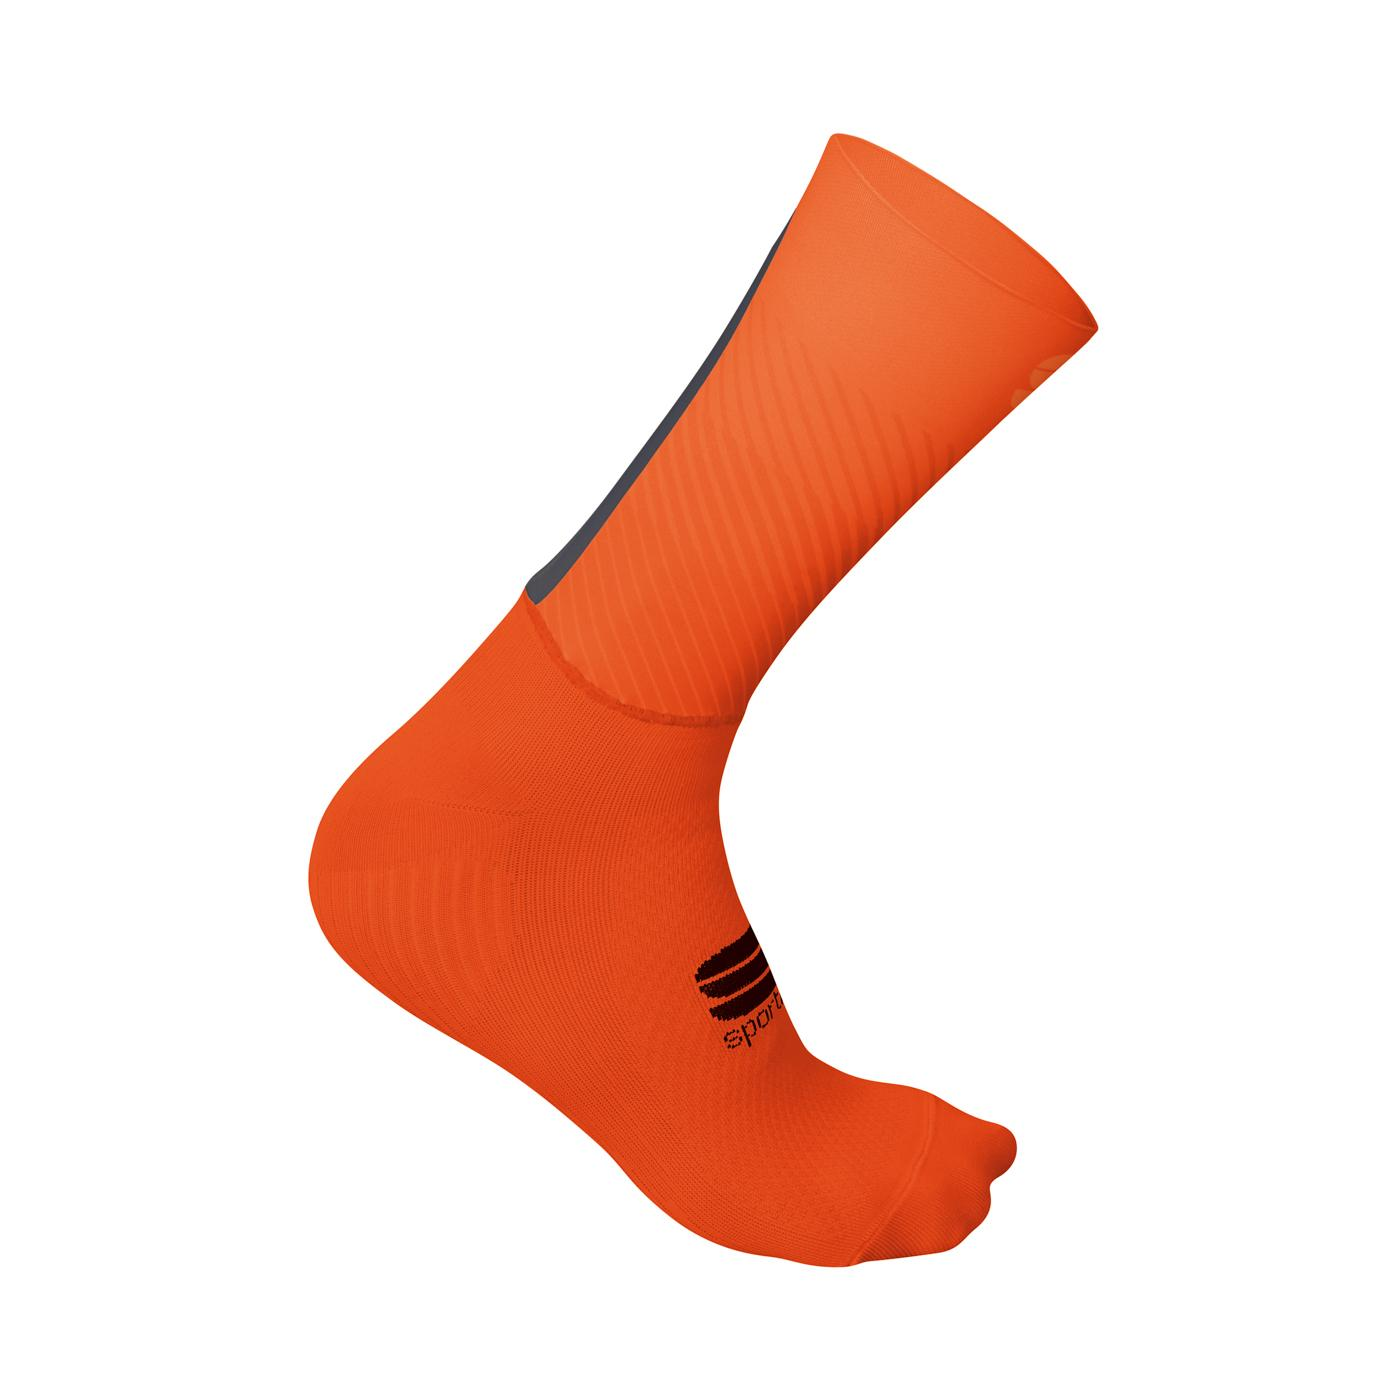 Sportful Fietssokken zomer  voor Heren Rood Oranje - SF Evo Socks-Fire Red Orange Anthr